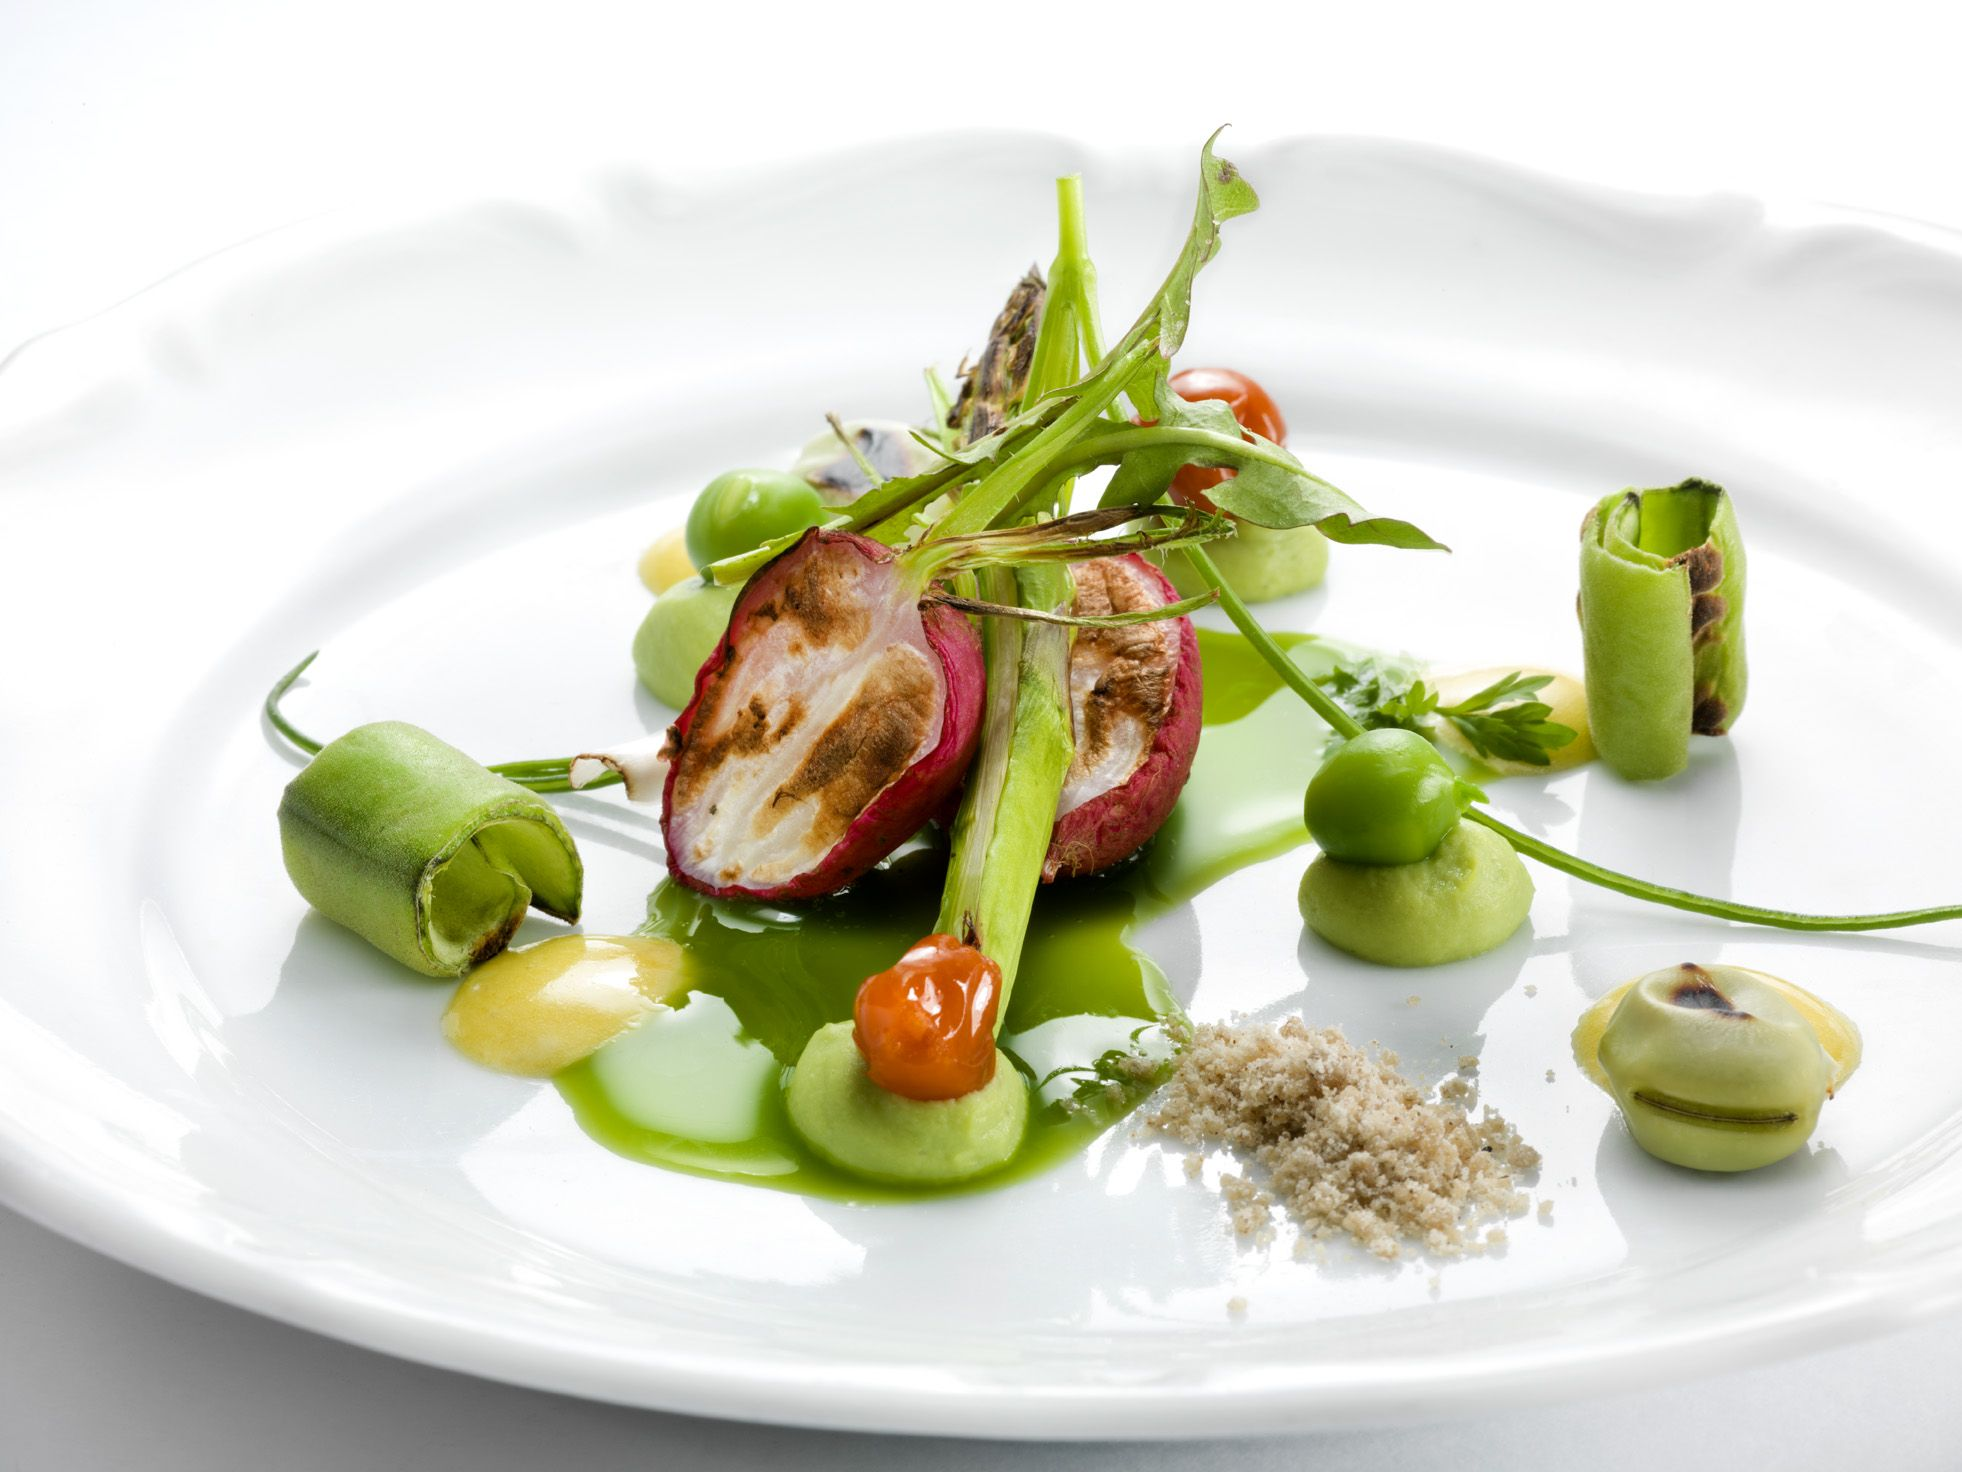 gourmet cuisine - google search | fabulous food | pinterest | food